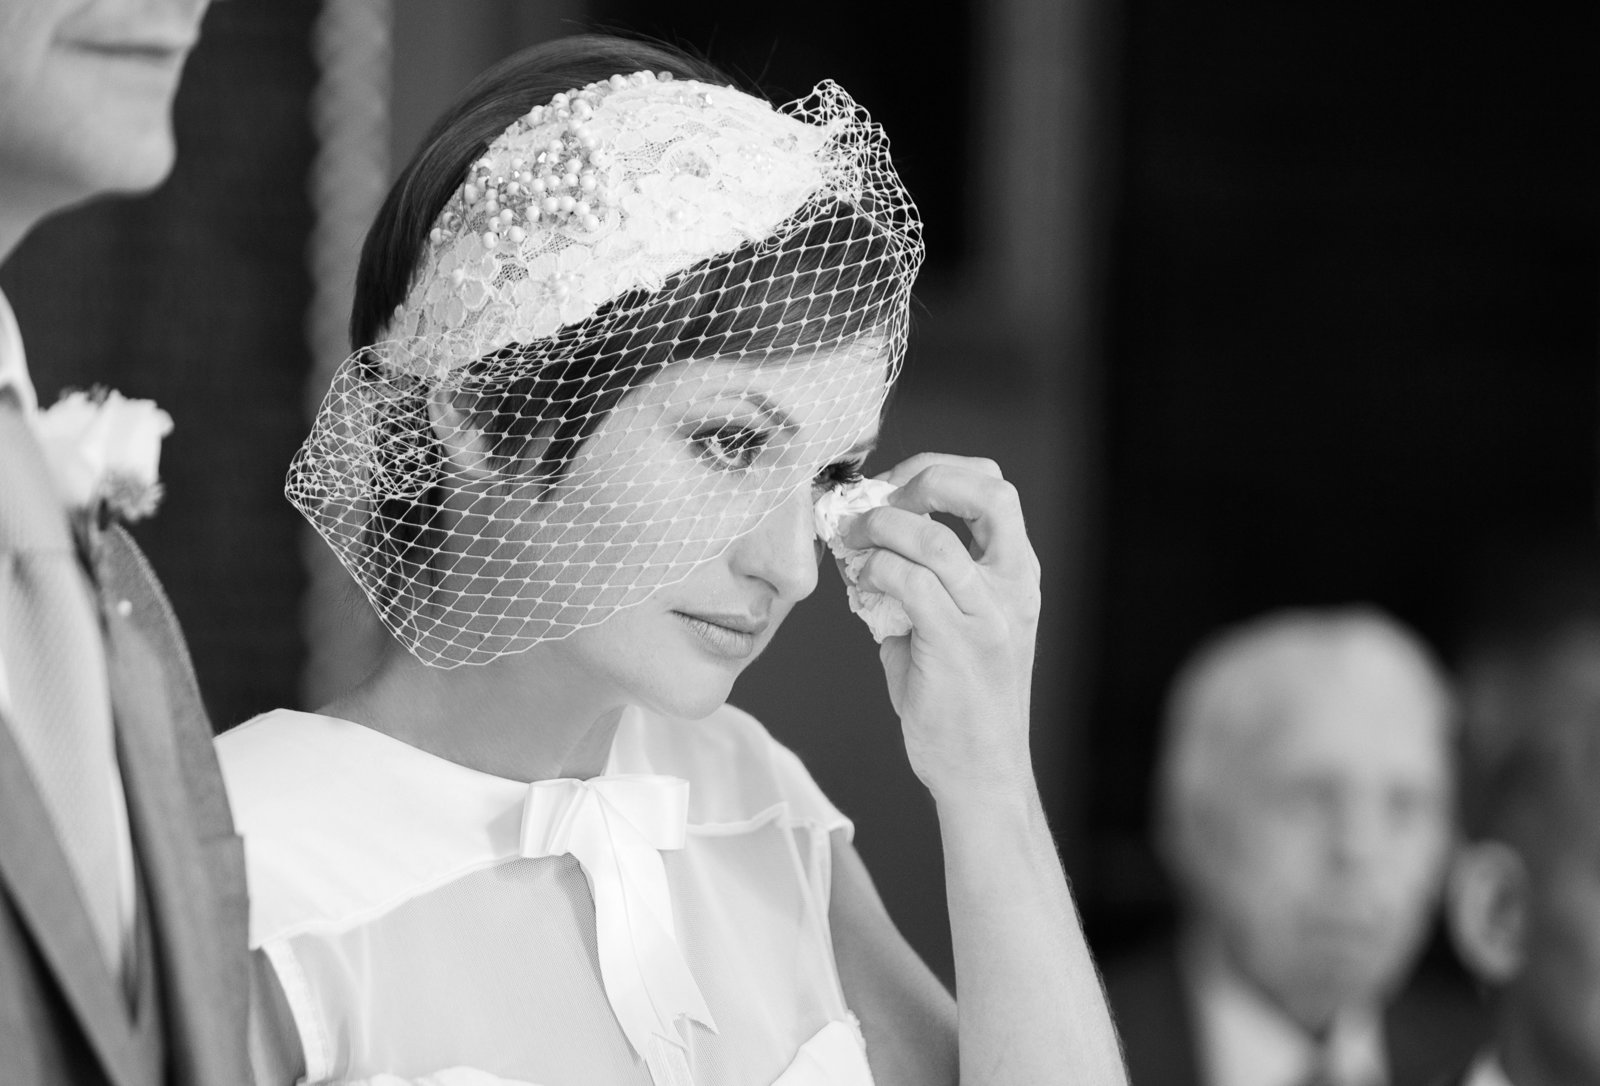 Beautiful bride catches a tear with her tissue while getting emotional at her wedding ceremony in Chichester in this black and white photo by Adorlee